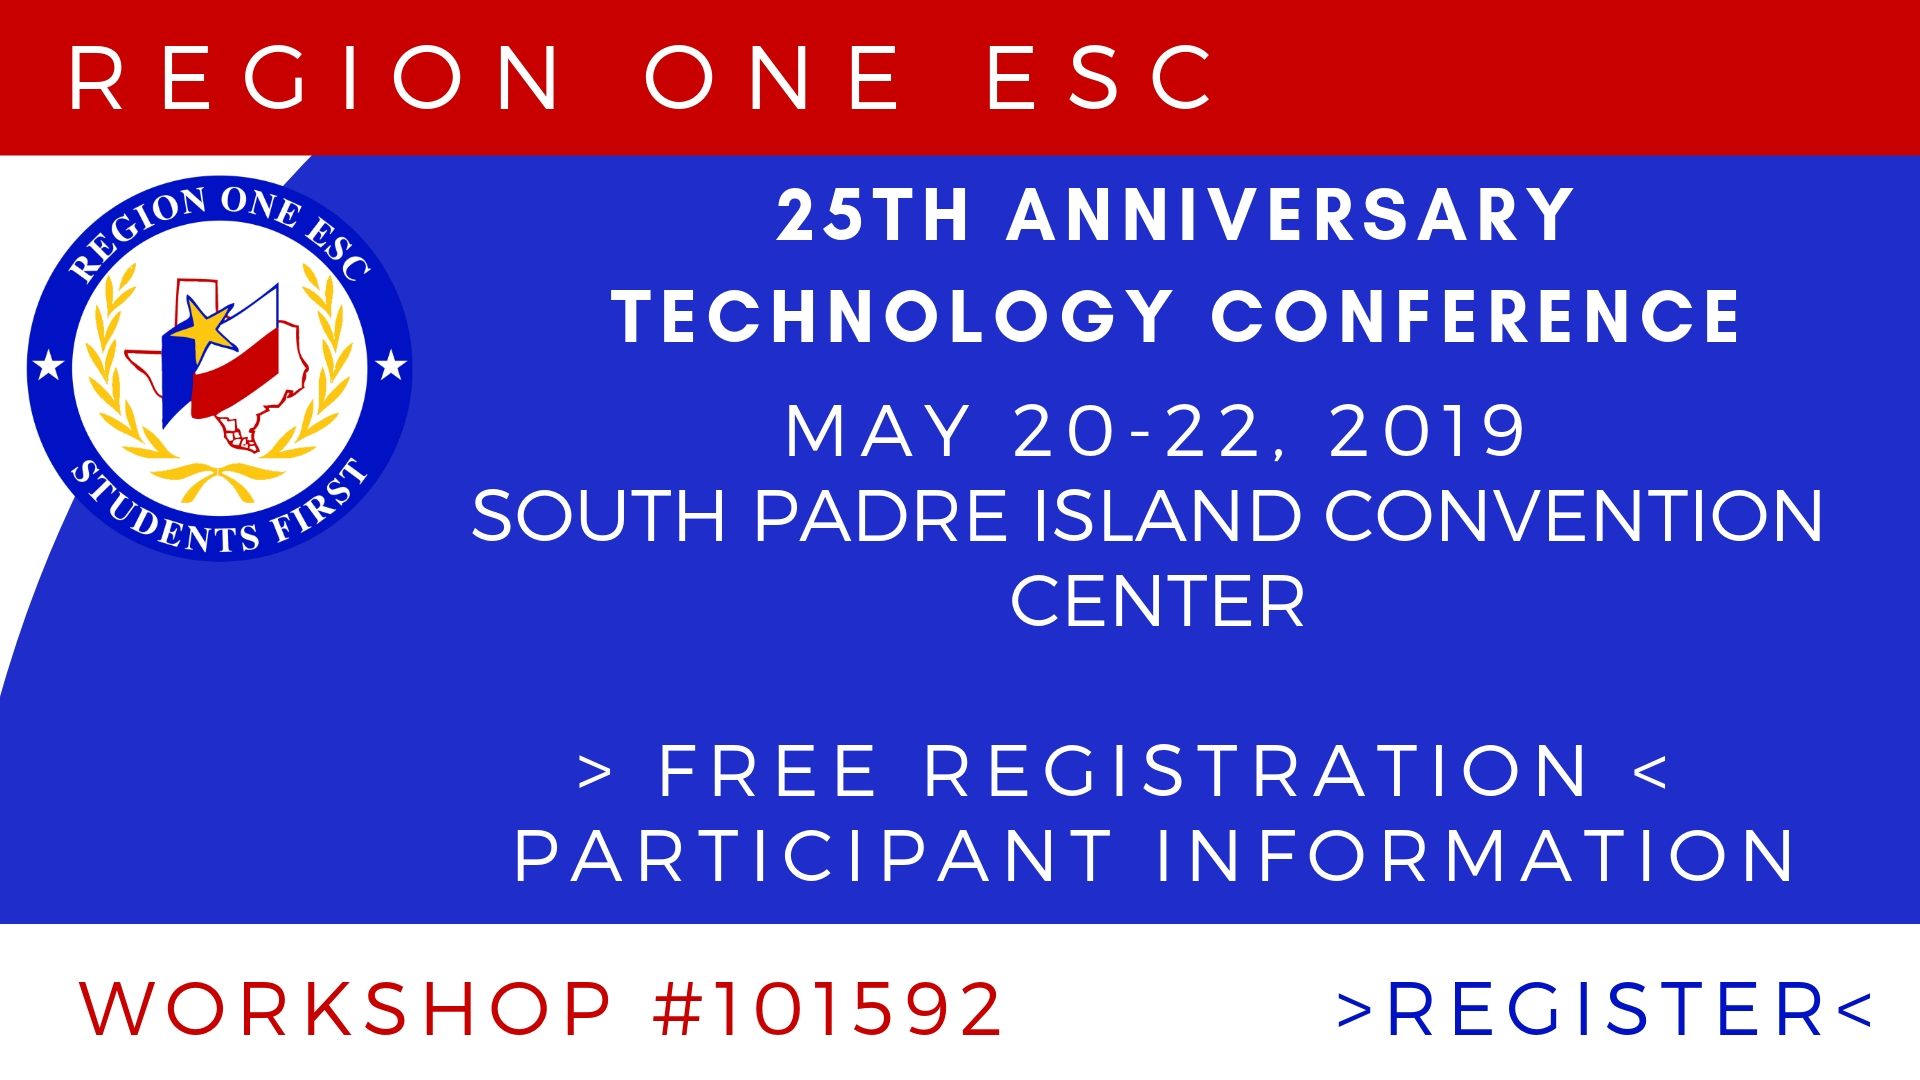 2019 Region 1 ESC Technology Conference